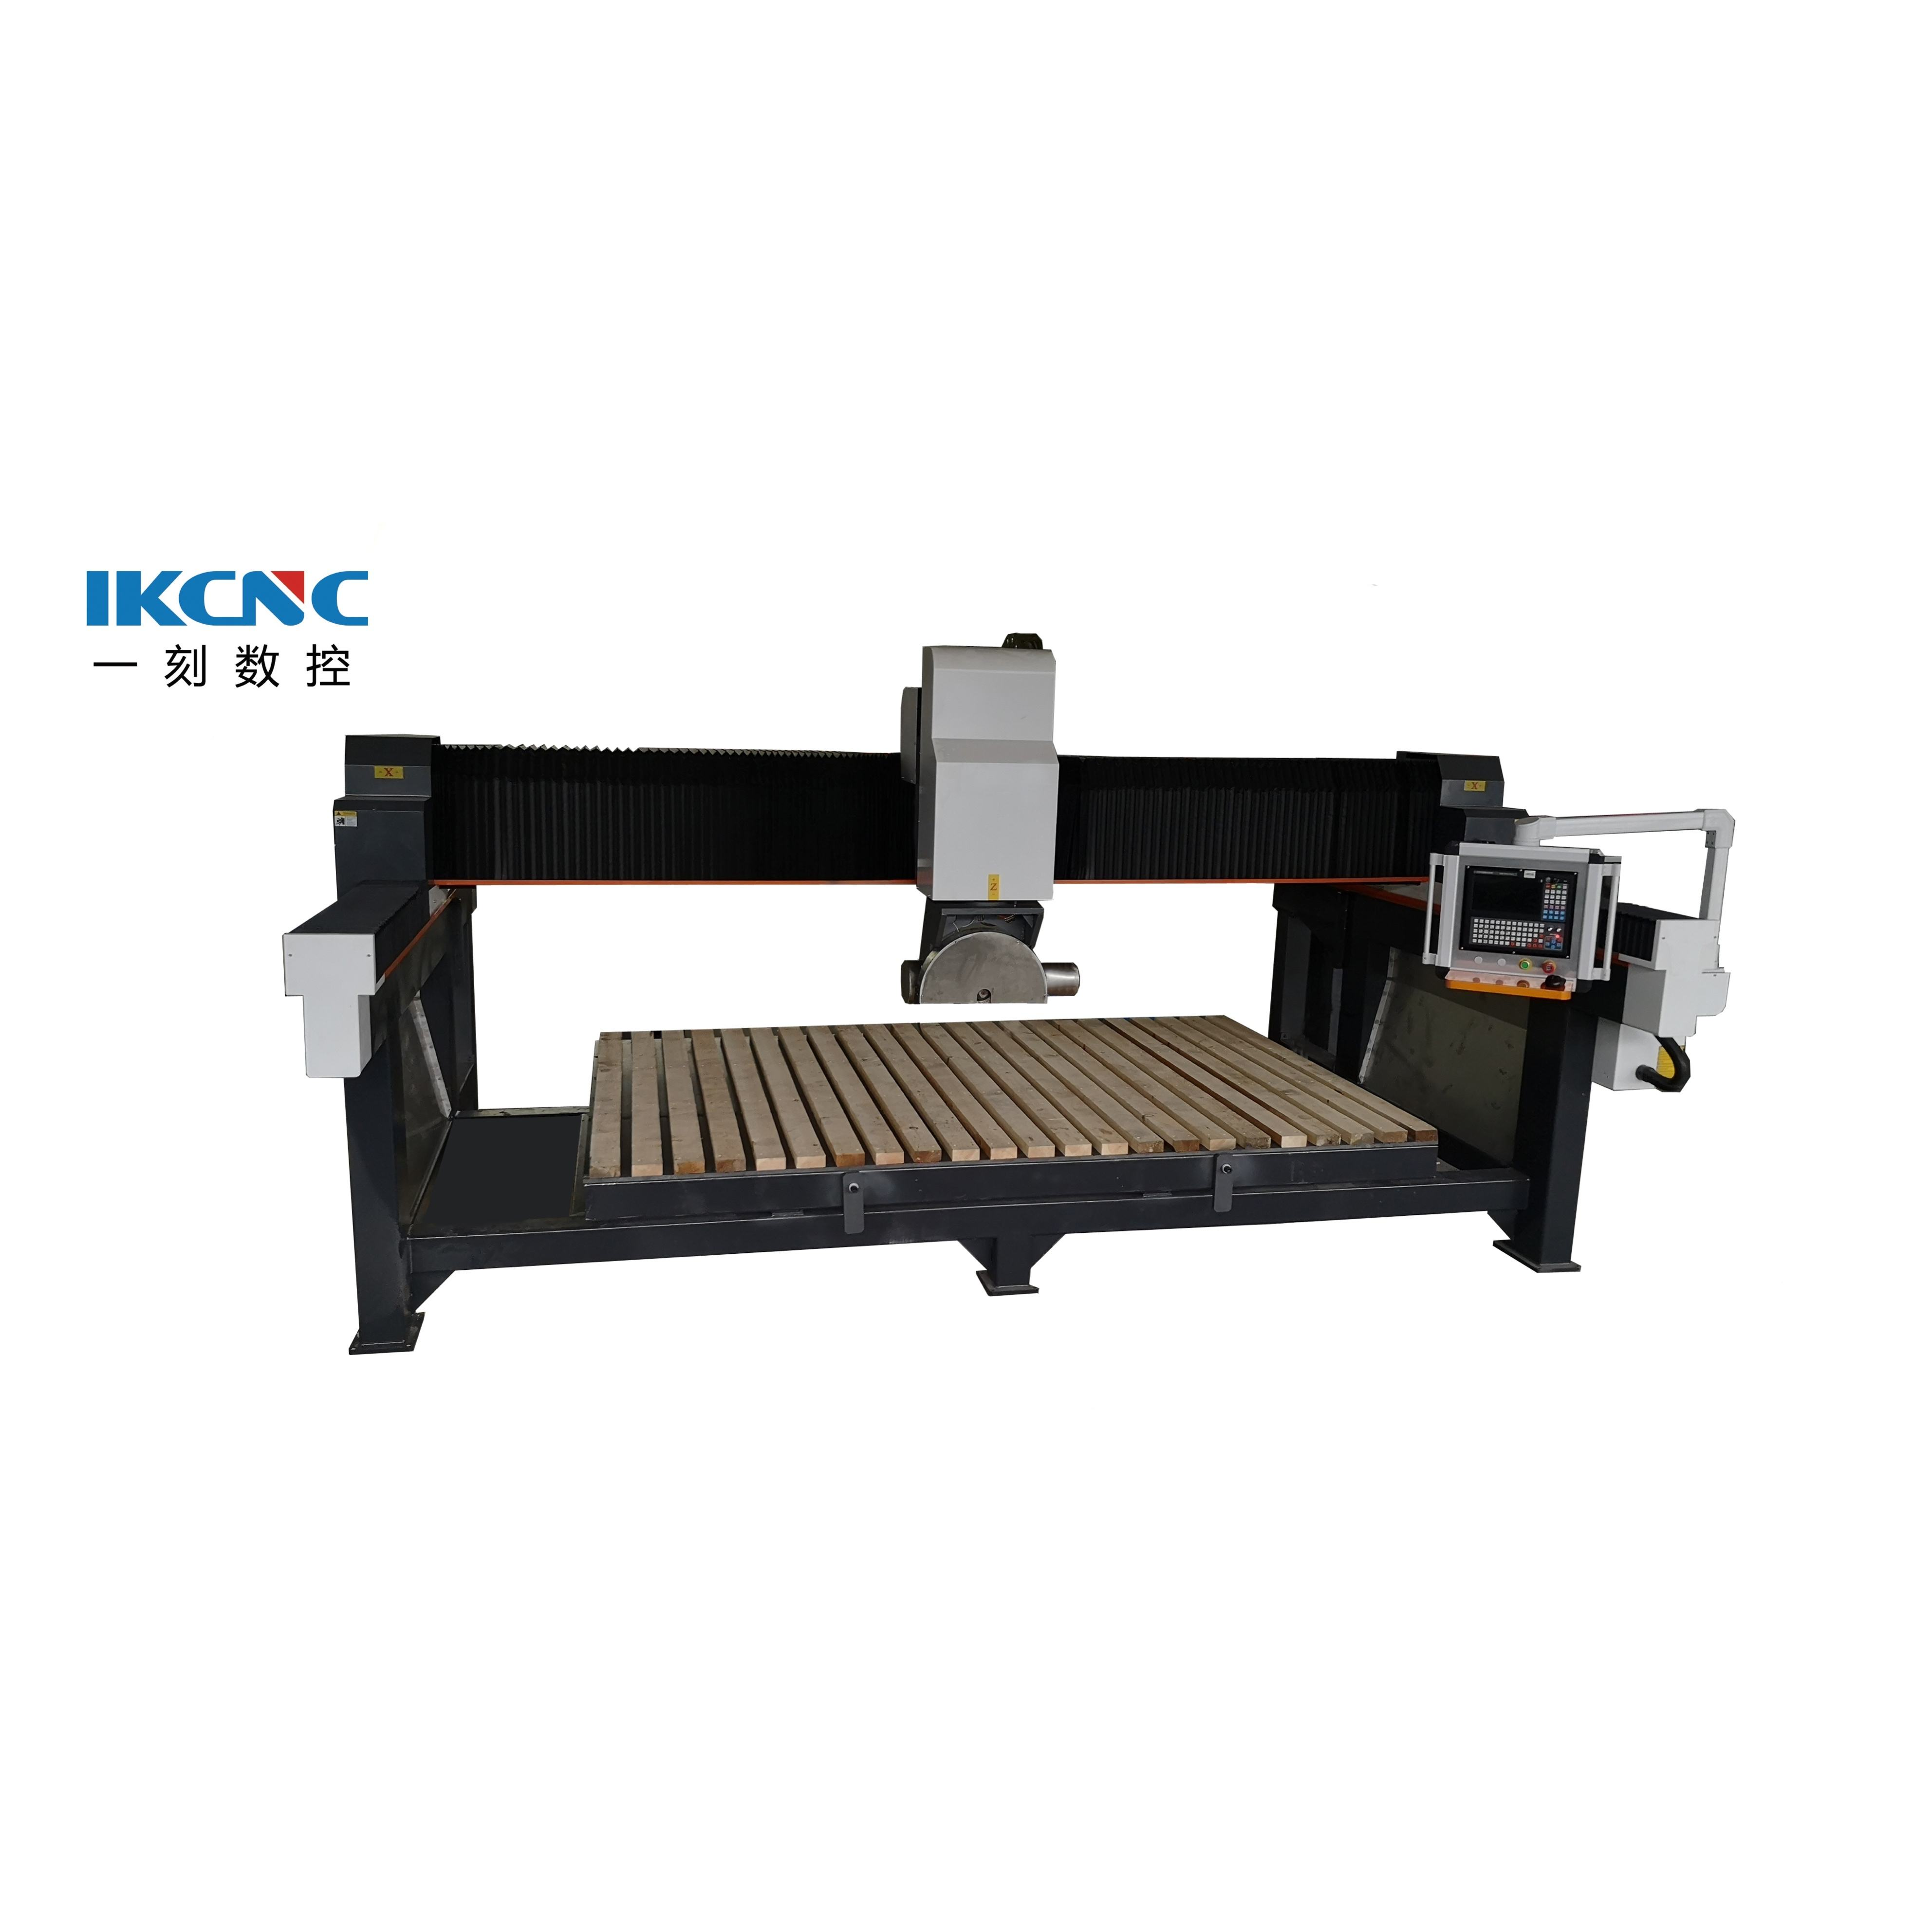 Widely Used Cnc Stone 5 Axis Granite Bridge Saw Cutting Cnc Marble Sculpture Machine For Sale